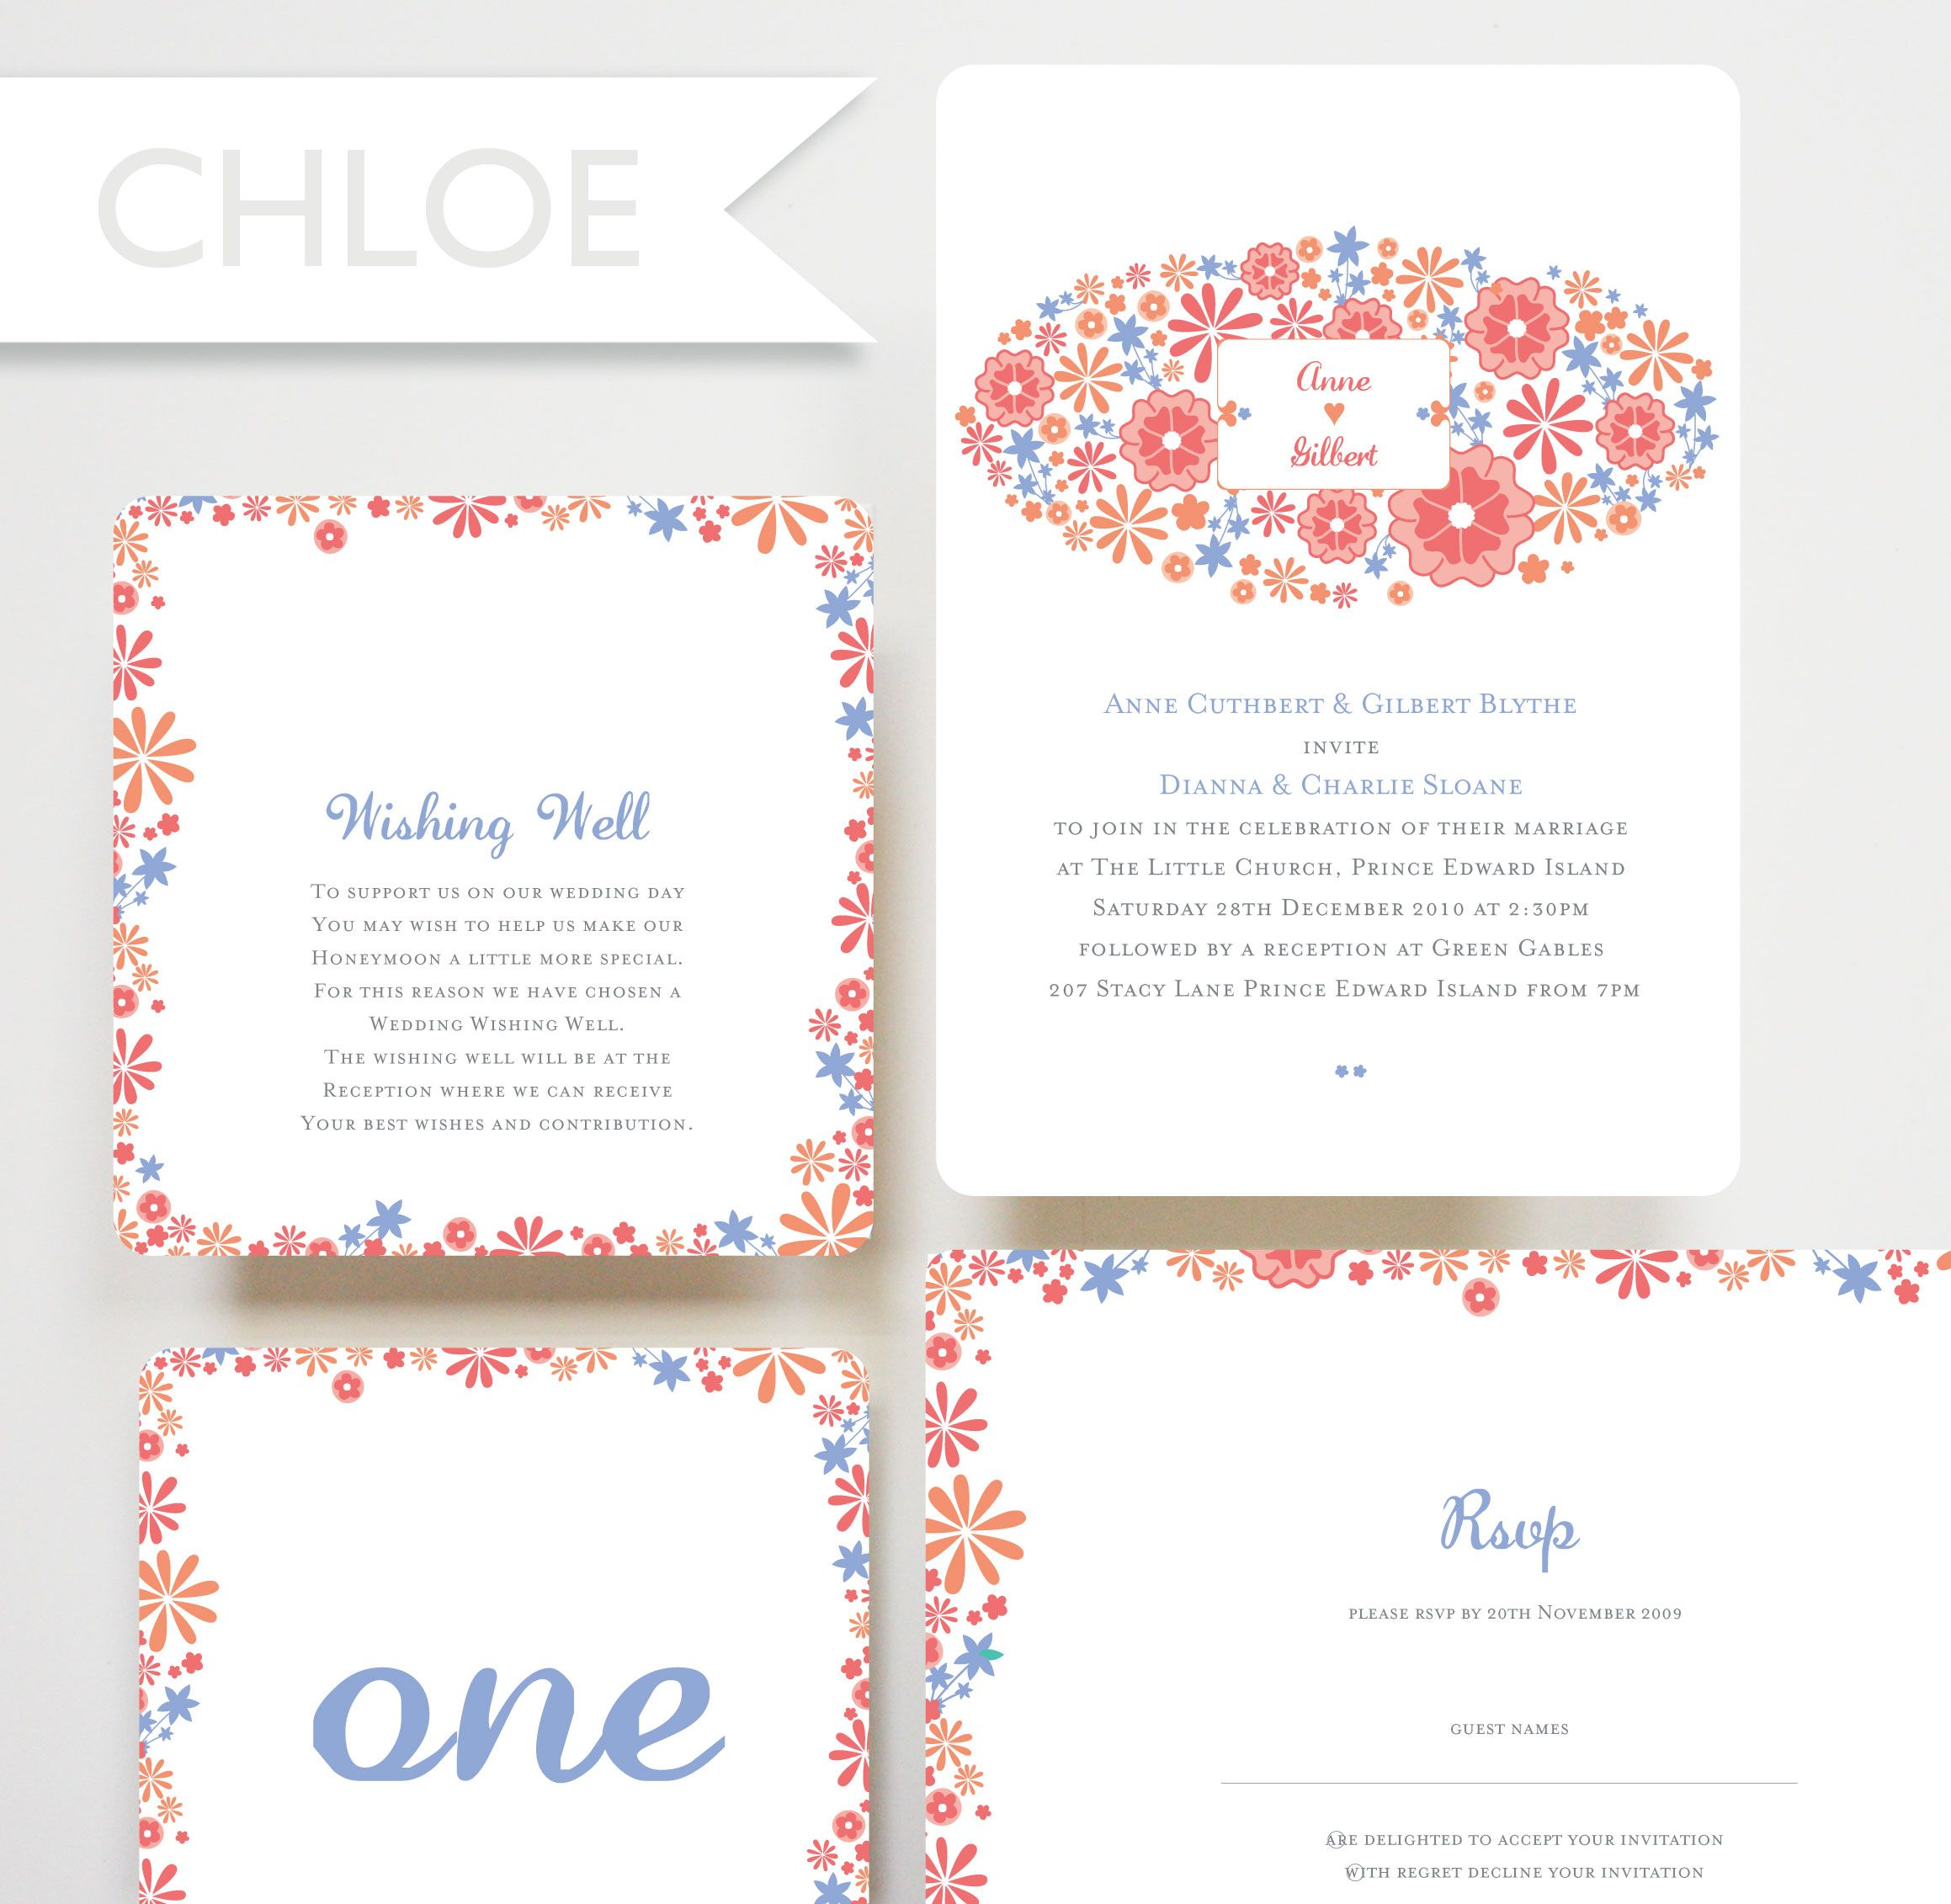 When Should Wedding Invitations Be Ordered: Our Wedding Stationery